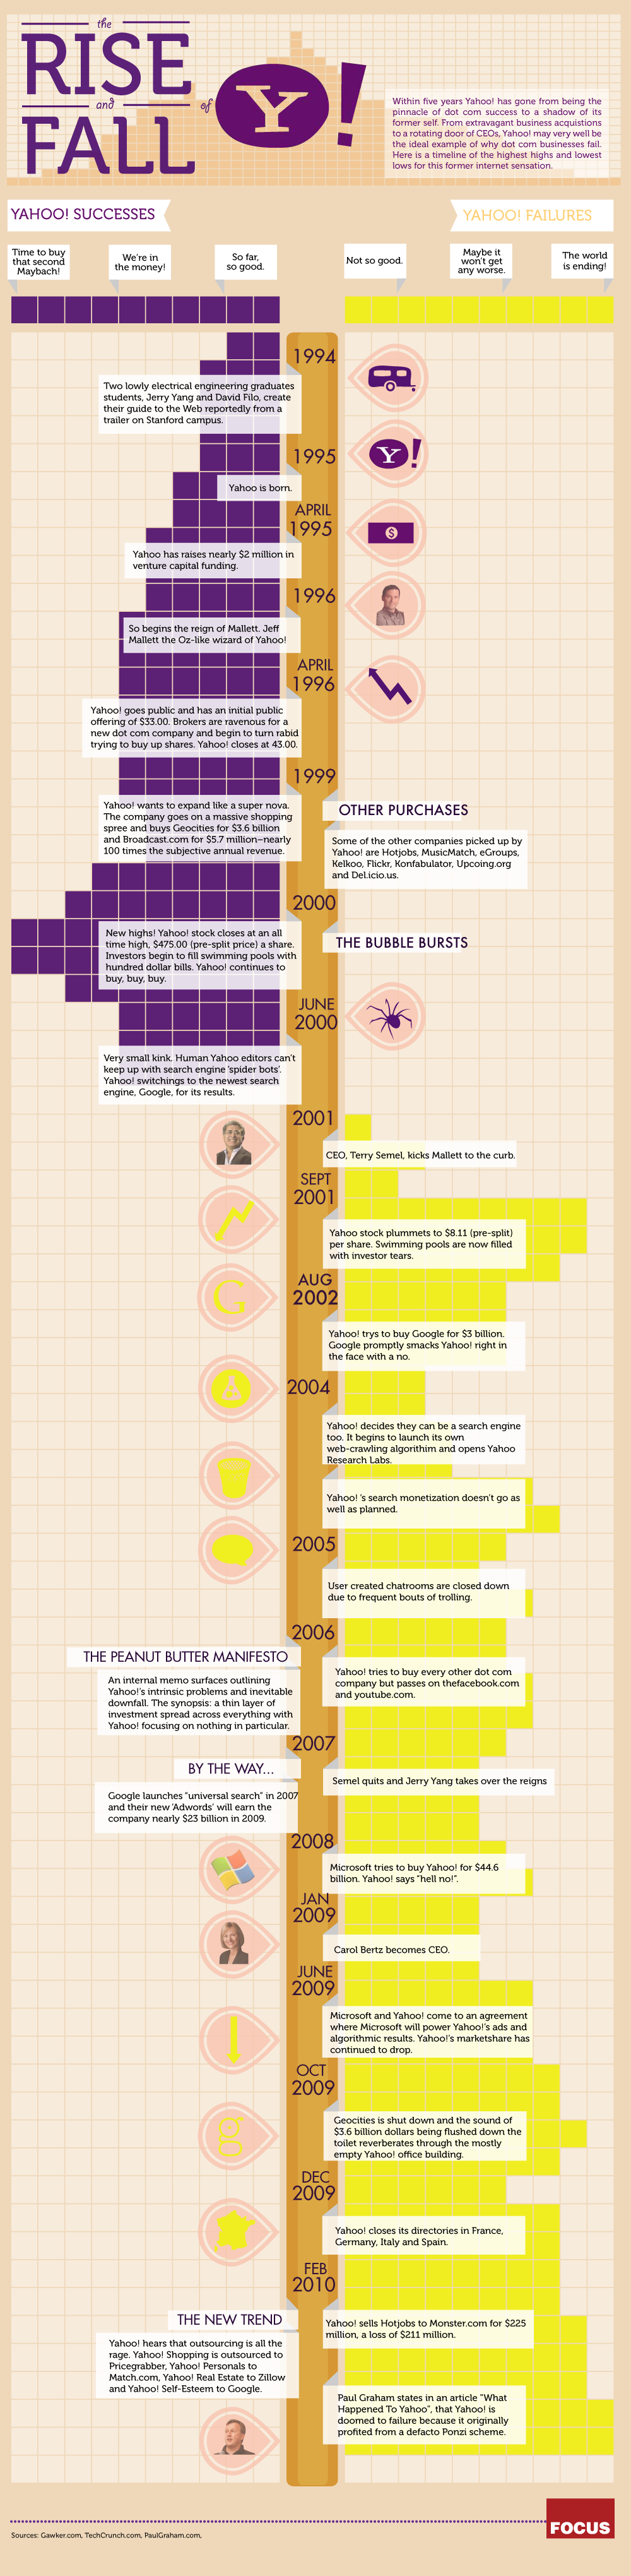 Focus: The rise and fall of Yahoo!